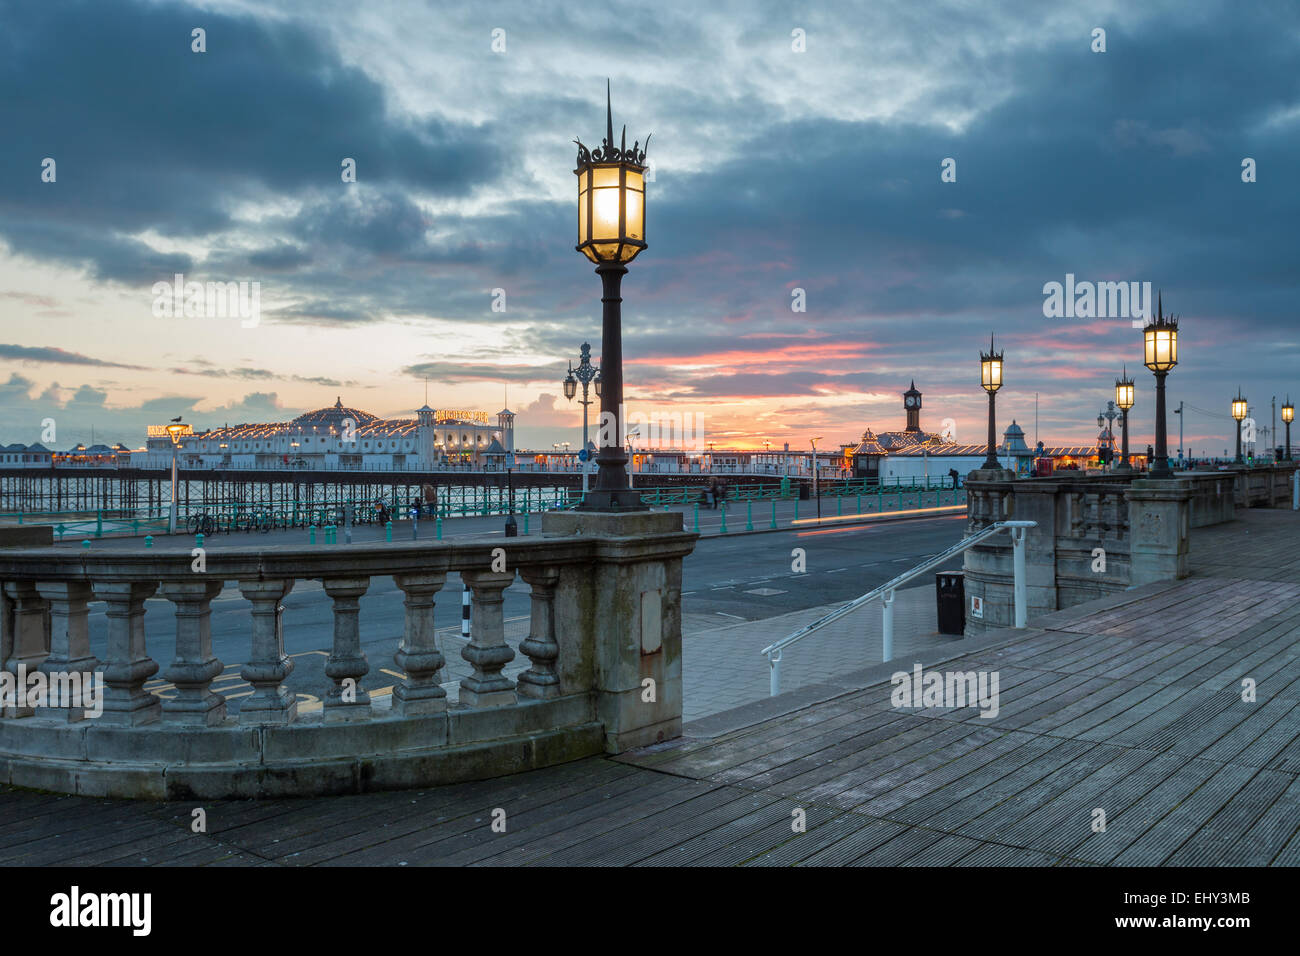 Winter evening on Brighton seafront, East Sussex, England. Stock Photo